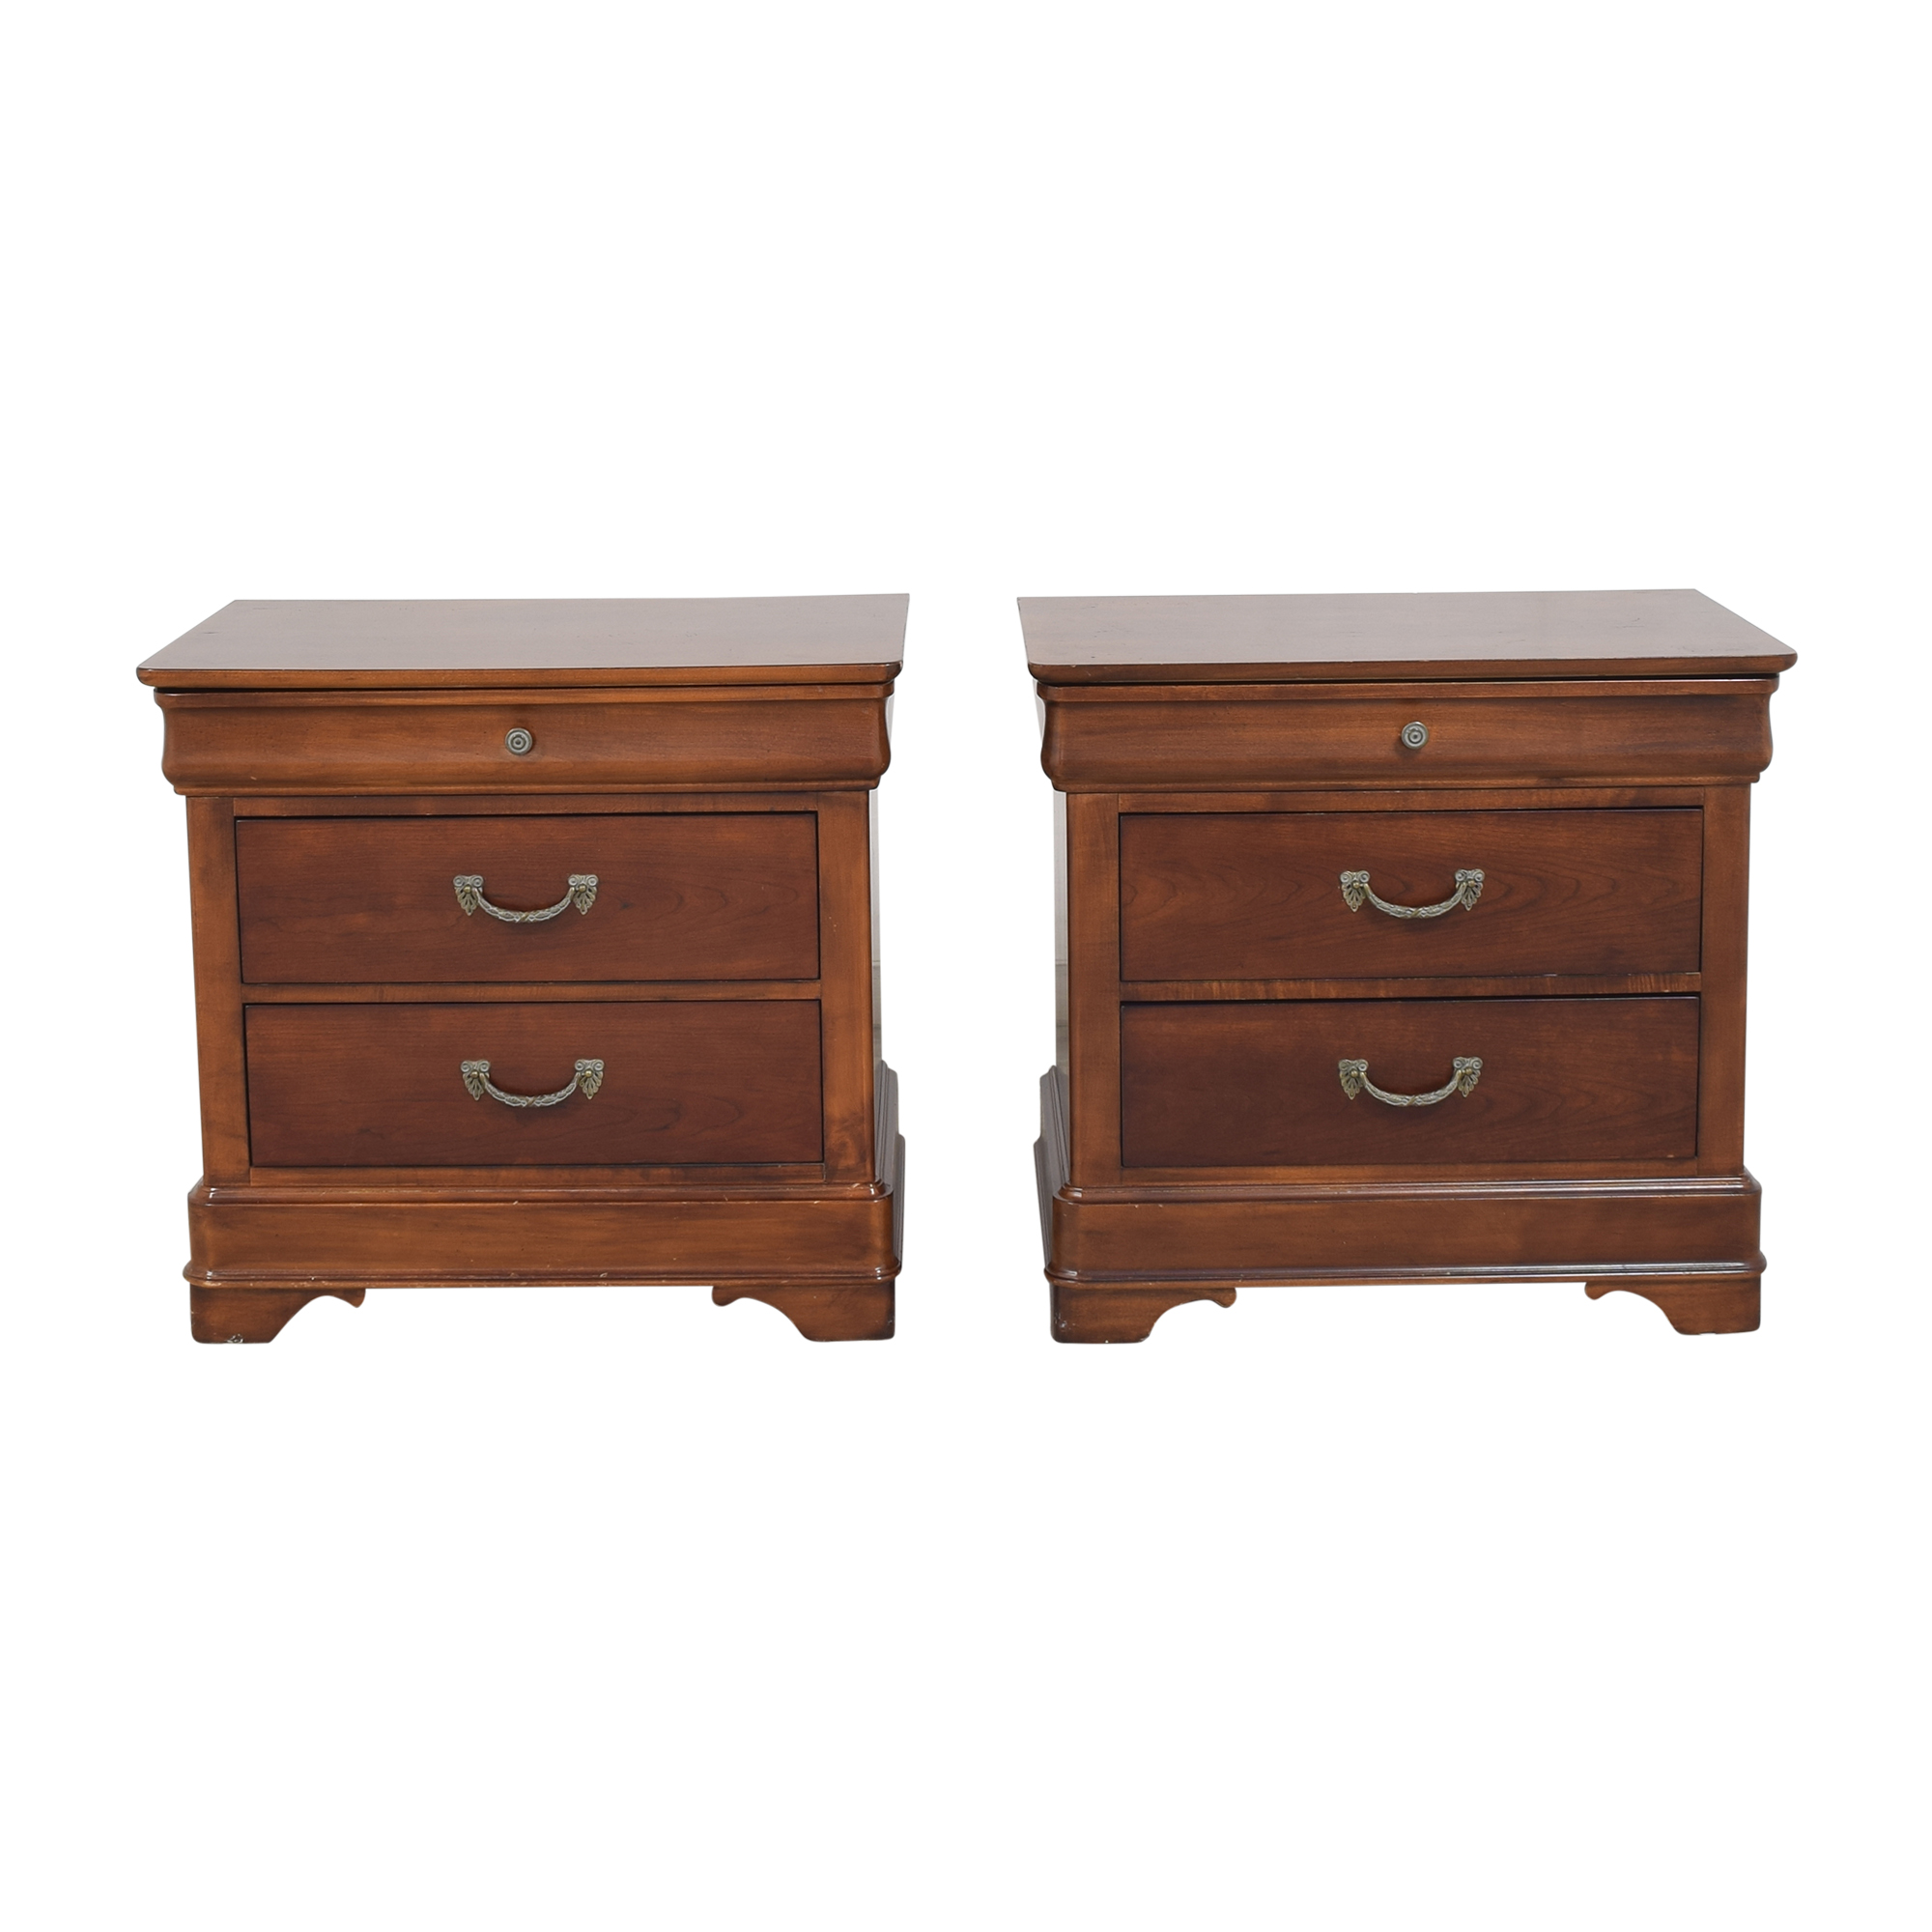 Drexel Heritage Drexel Heritage Delshire Three Drawer Nightstands second hand